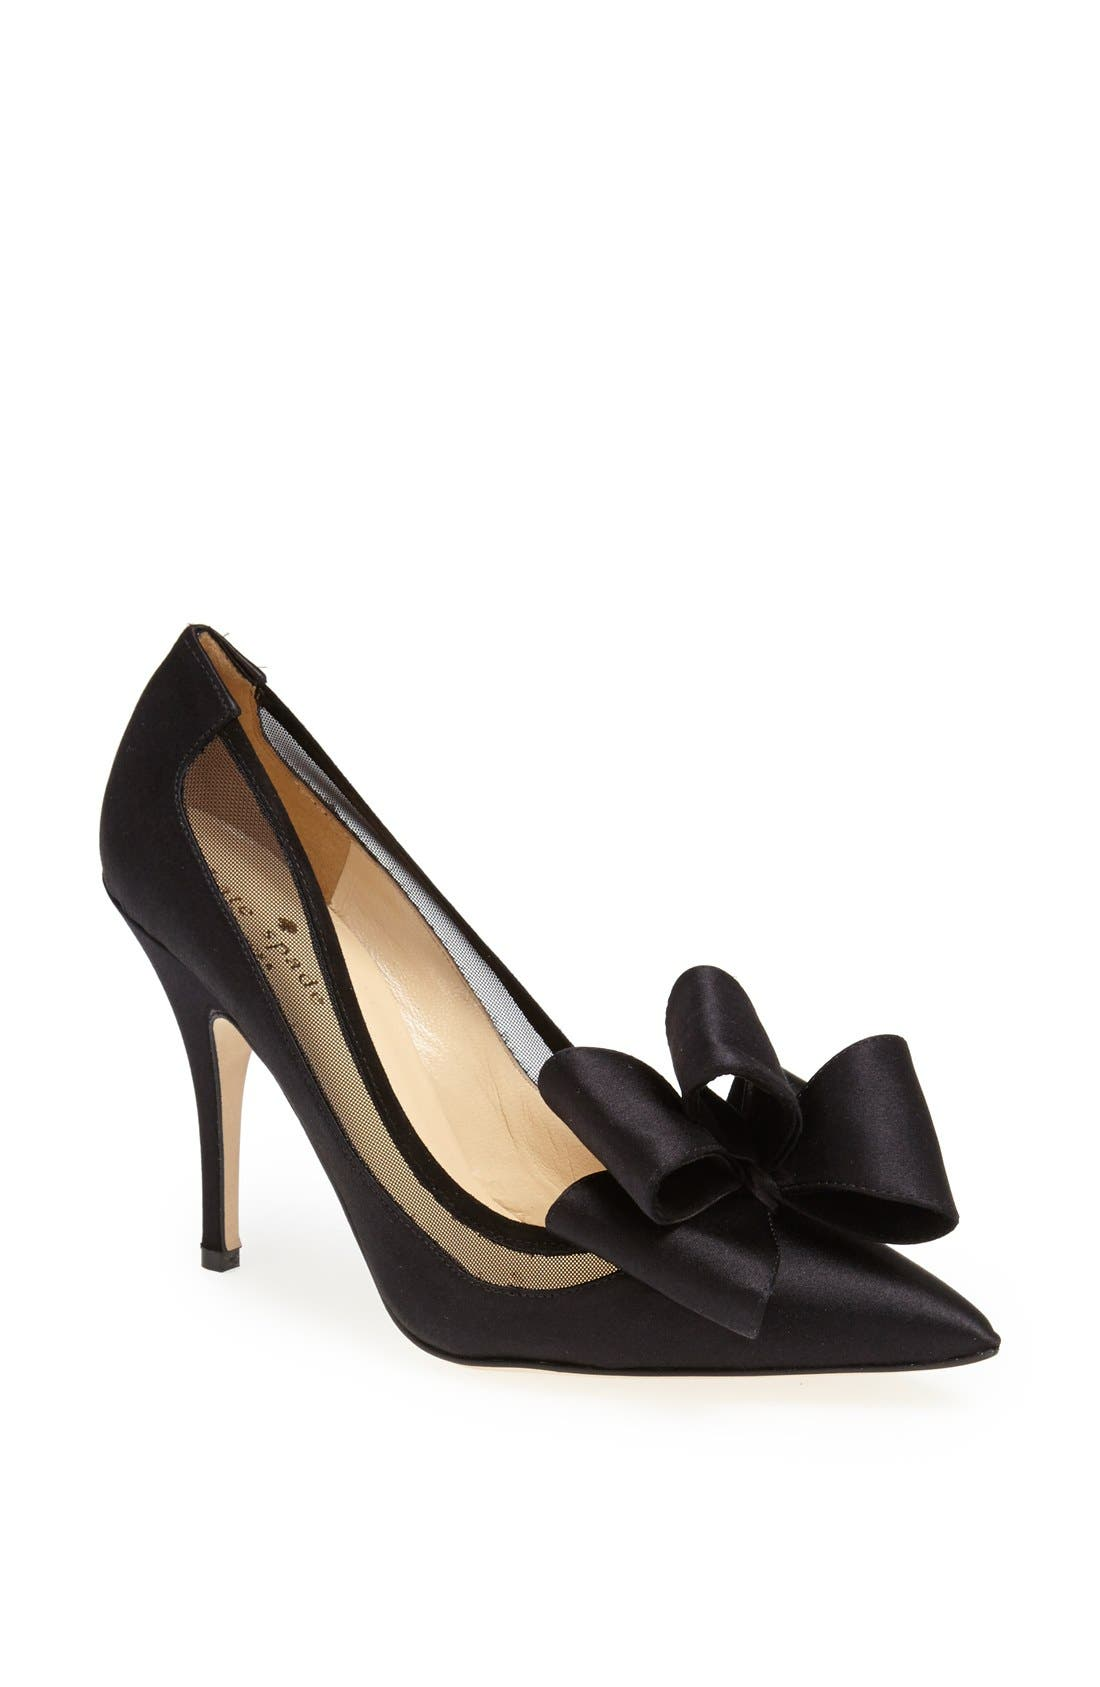 Alternate Image 1 Selected - kate spade new york 'lovely' pointy toe pump